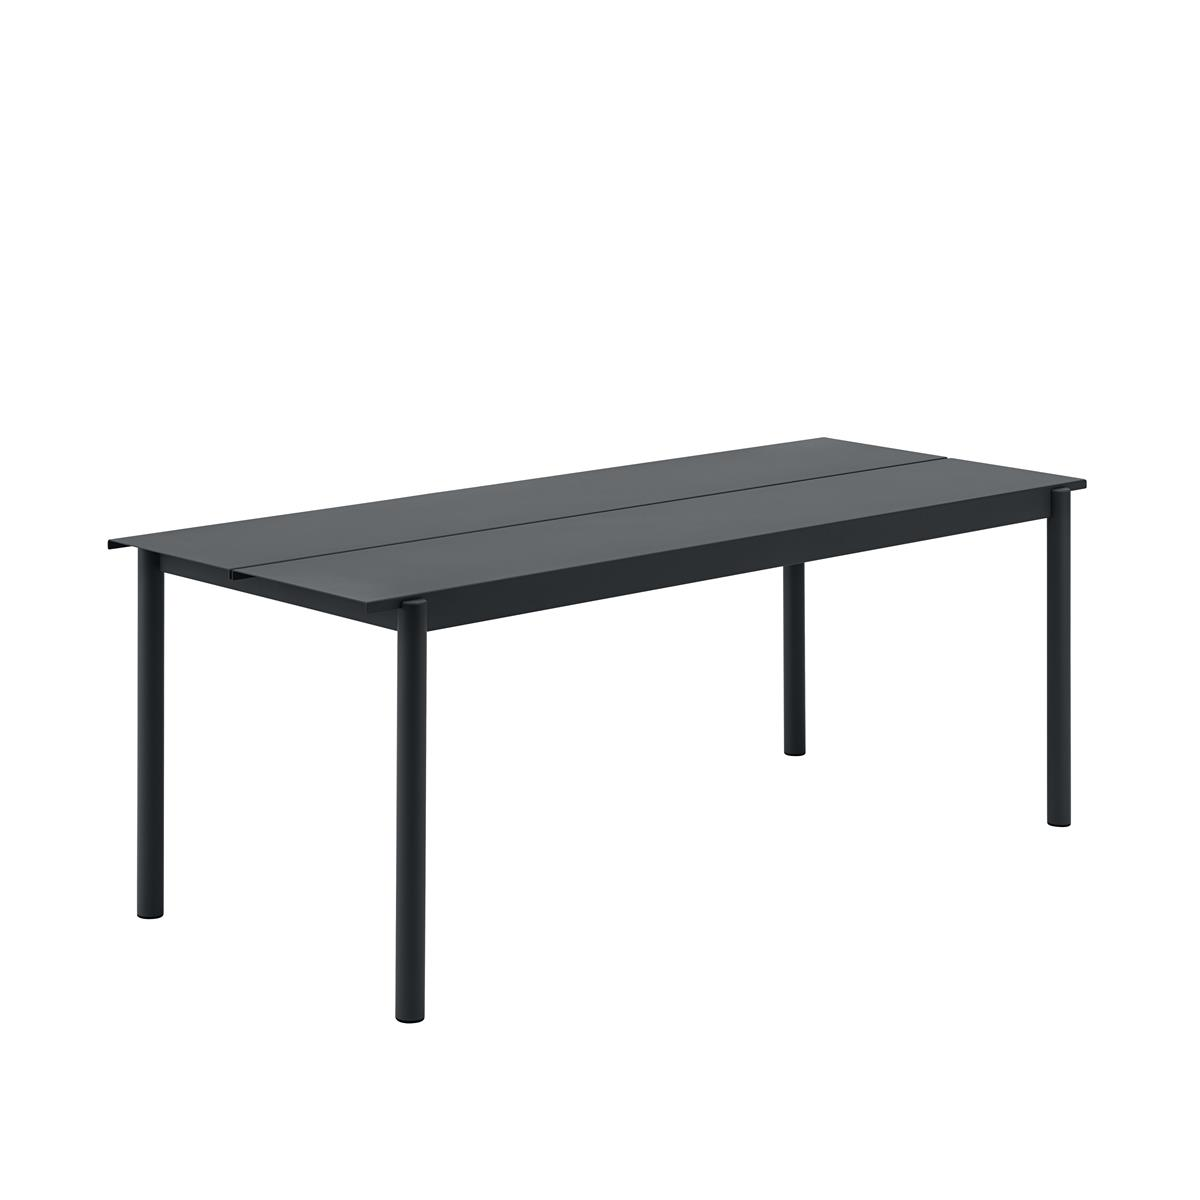 Linear Steel Table 200 x 75 x H73,5 - Black